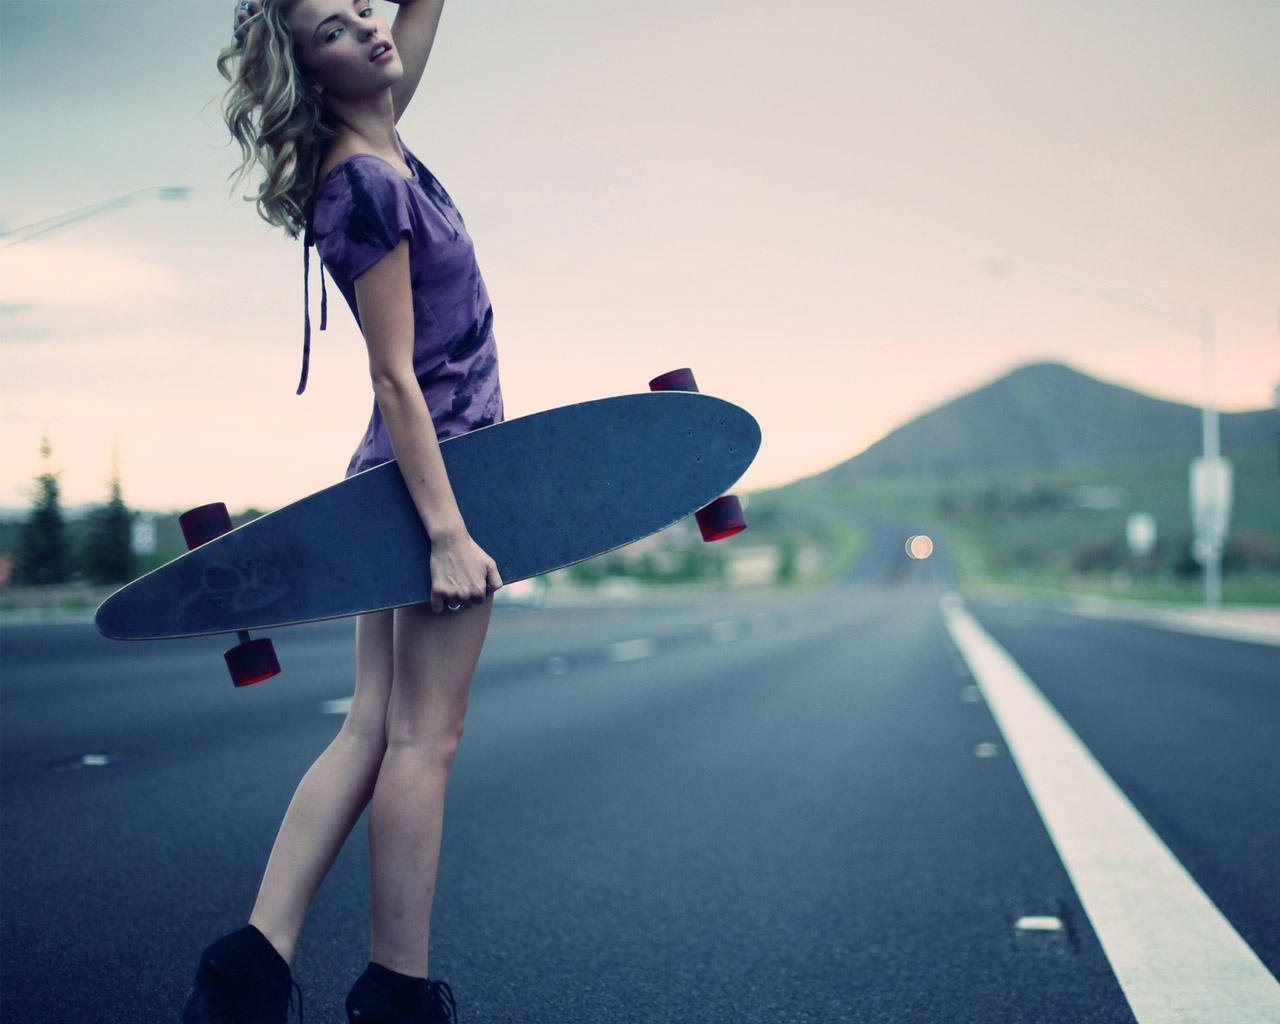 ... Longboard Wallpaper; Longboard Wallpaper